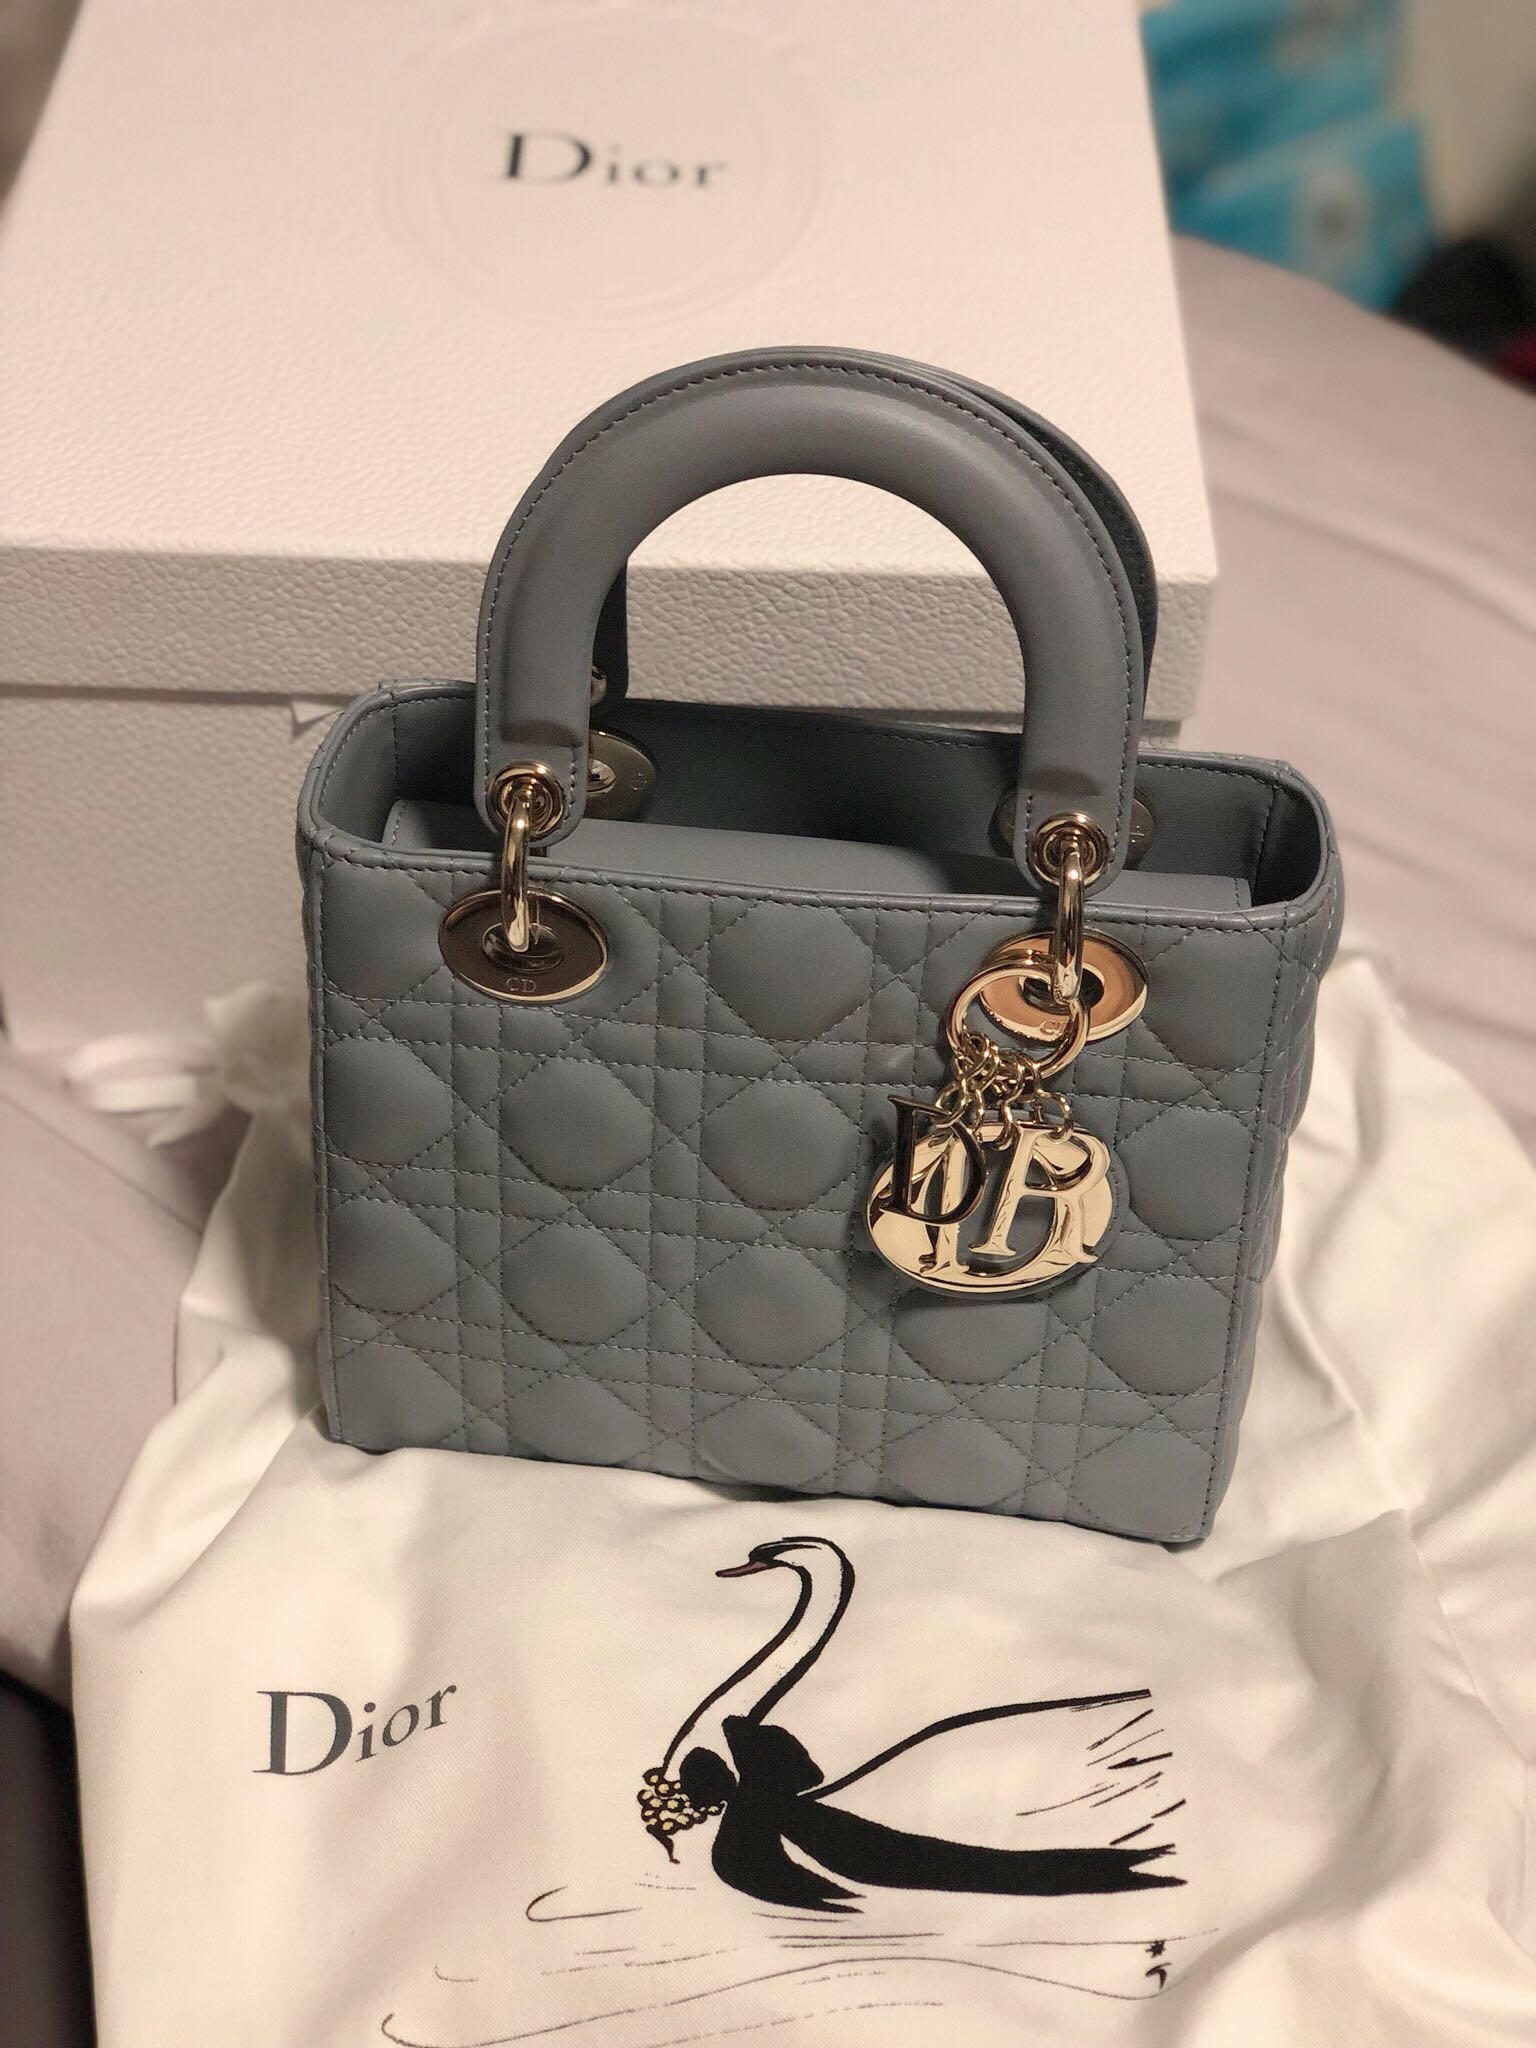 c69c35706c My Lady Dior (Brand New), Luxury, Bags & Wallets, Handbags on Carousell